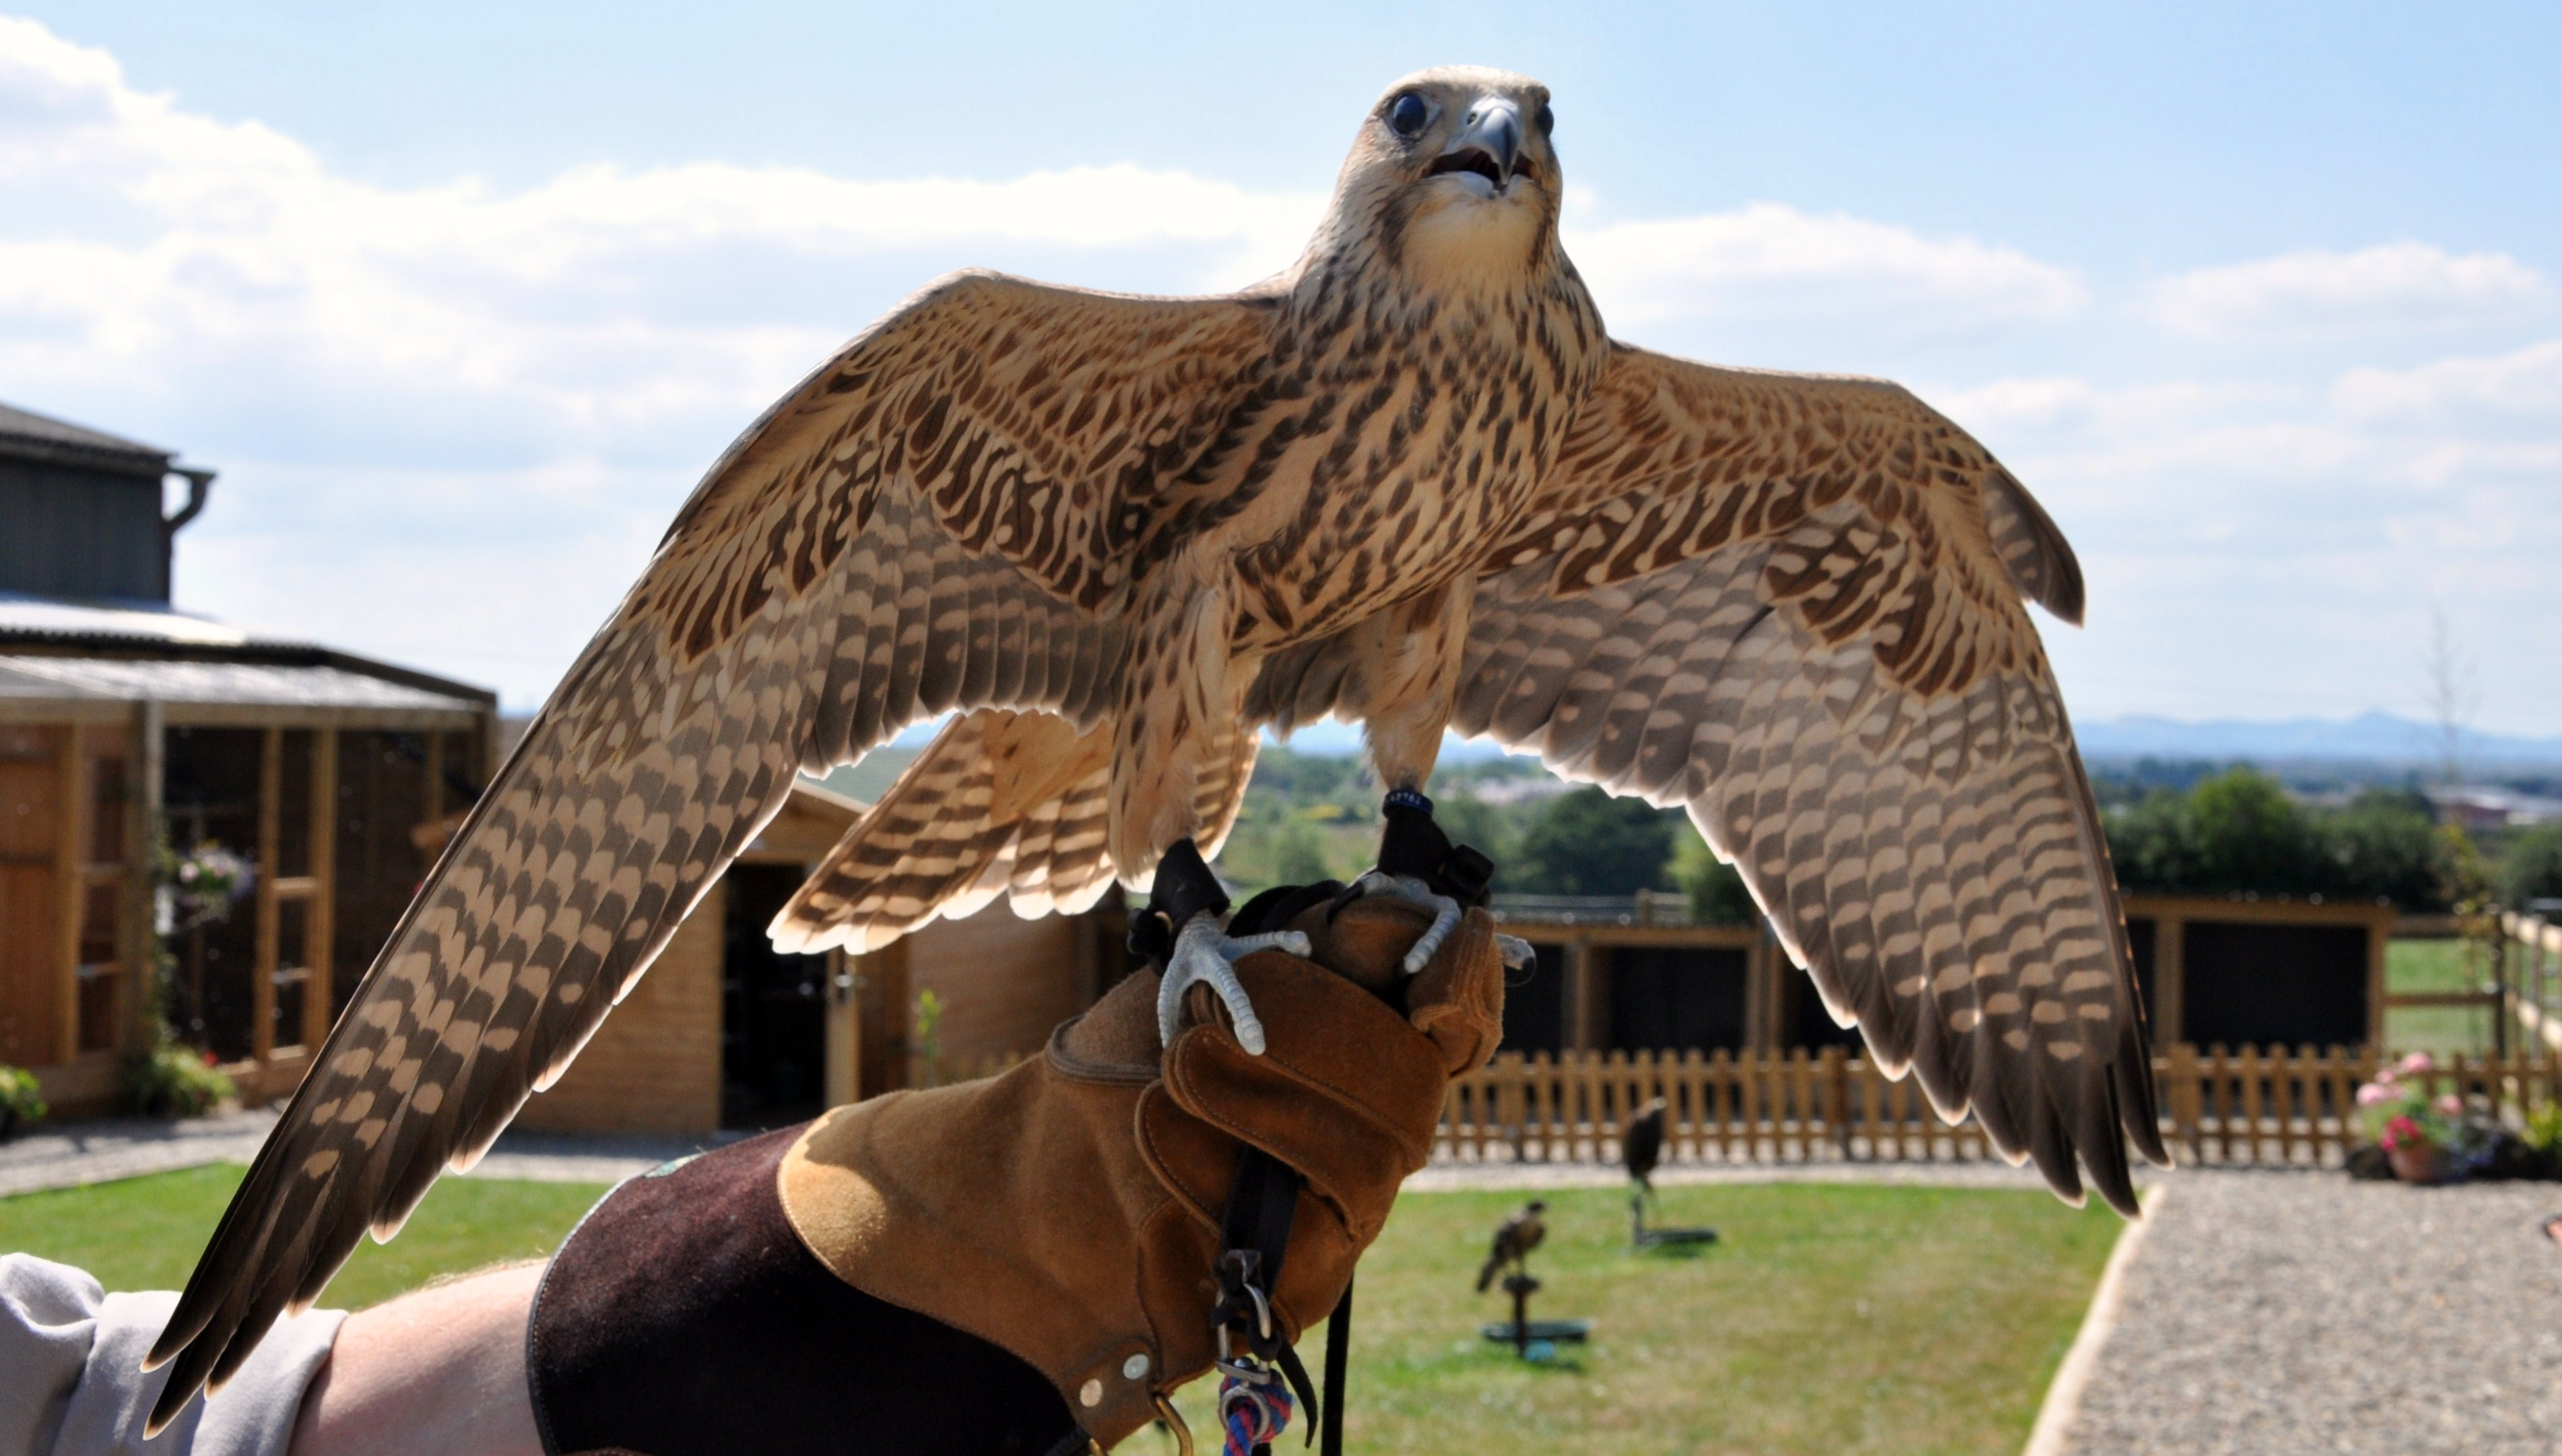 Bird of Prey Experience